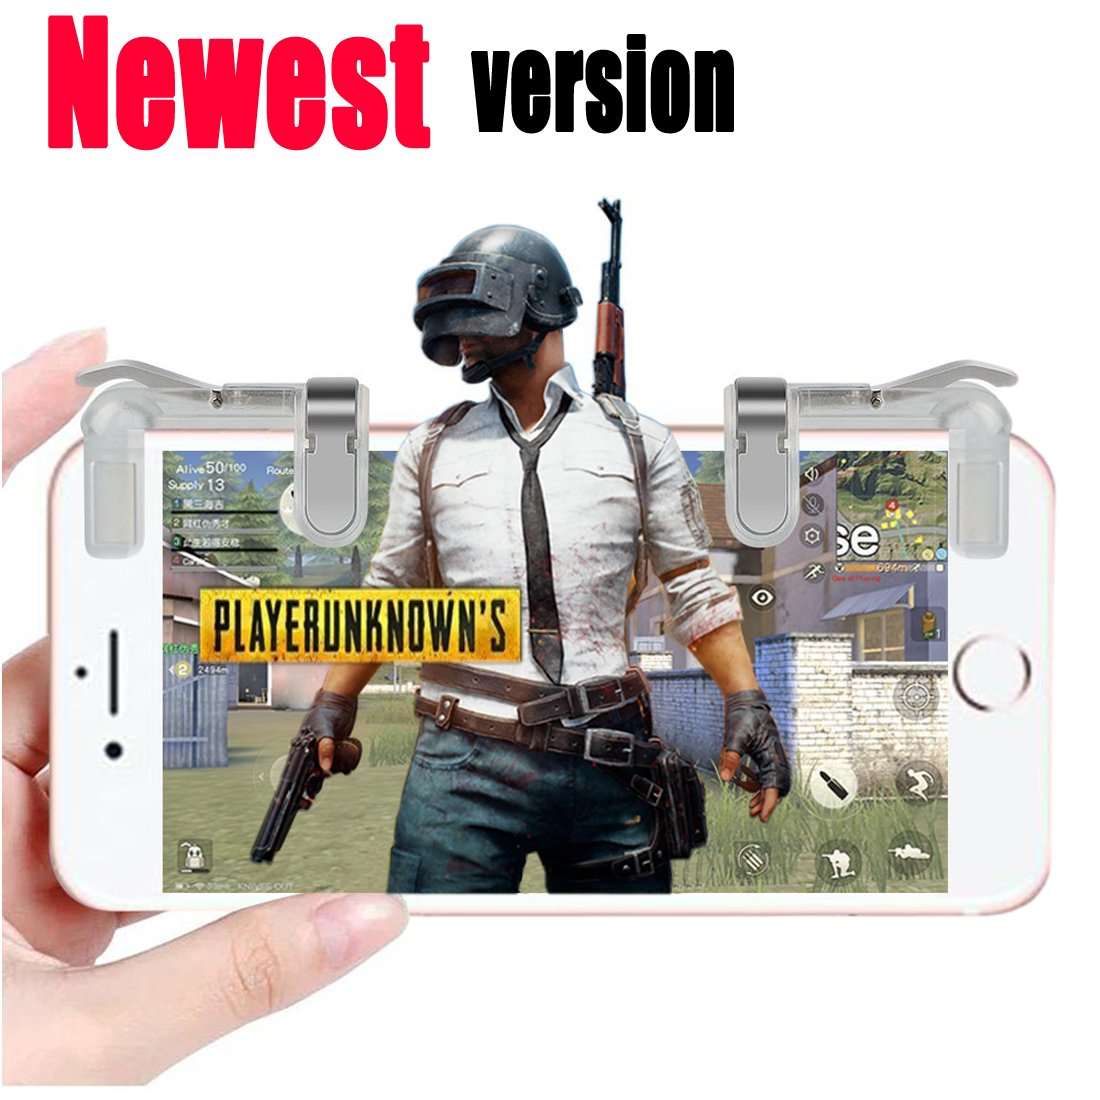 Cumeou Mobile Game Controller,Sensitive Shoot and Aim Keys L1R1 Triggers Mobile Joystick with/without Portable Handle for PUBG/Fortnite/Rules of Survival,Compatible with Android Phone/iPhone